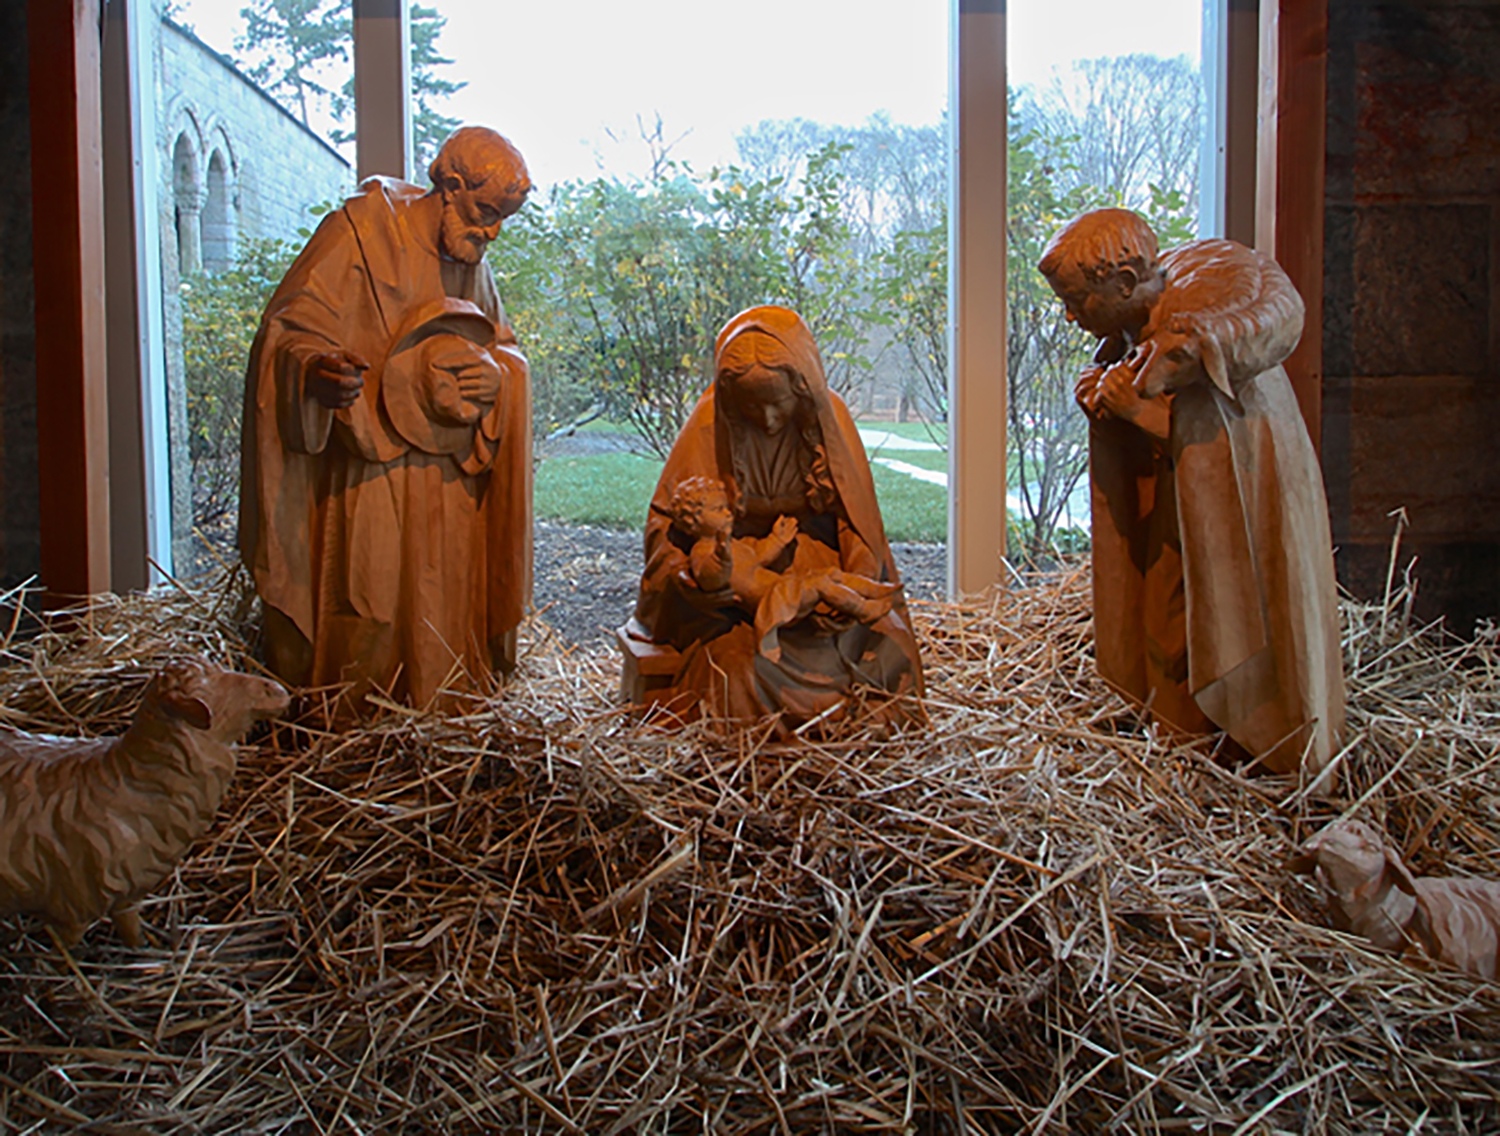 Figure 15: Nativities have been carved in the small Bavarian village of Oberammergau for many generations, and today approximately 200 woodcarvers work in the village. At one time Ludwig Kraus, who carved this large Nativity from basswood, had 45 woodcarvers working for him in his studio. This Nativity, which Kraus carved between 1958 and 1965, was in the window of Marshall Field's flagship store in Chicago at Christmastime. Kraus died in 1982, but the woodcarving shop continues under his nephew, Ernst Kraus, who apprenticed with his uncle. On loan from the National Christmas Center and Museum.